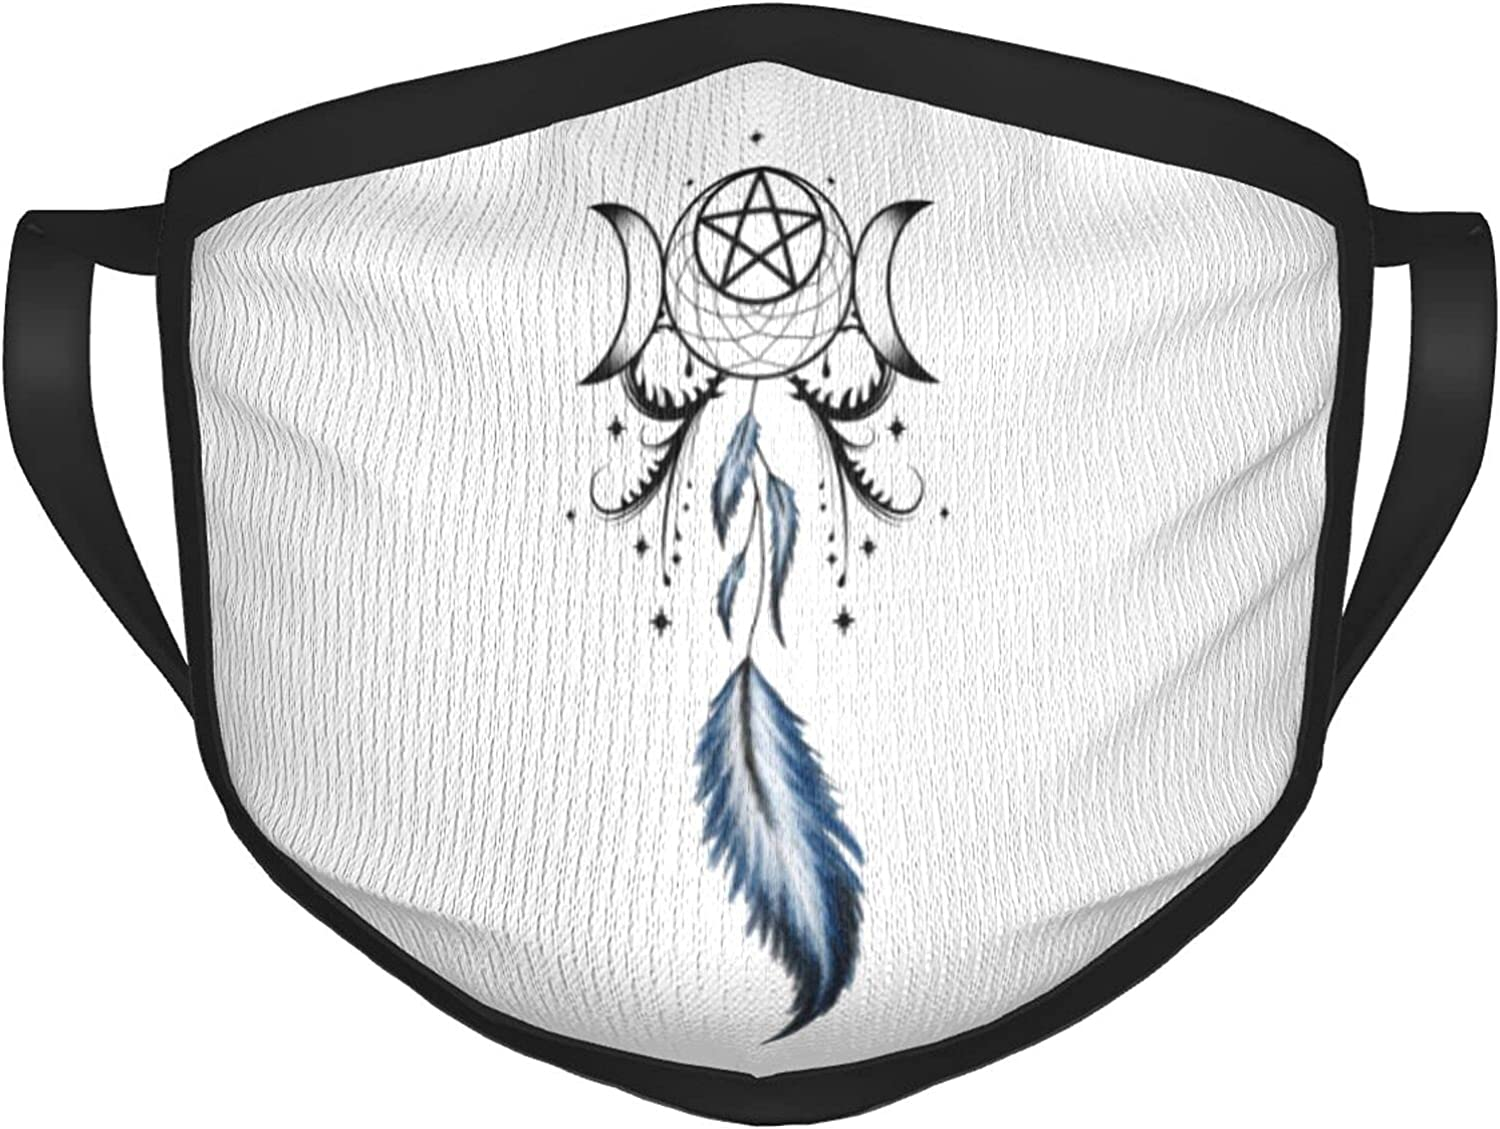 Dreamcatcher Pagan Moon Wicca Wiccan Breathable Adult Mouth Cover Black Border Masks Balaclava Black Reusable with Washable Dustproof Cotton Face Masks